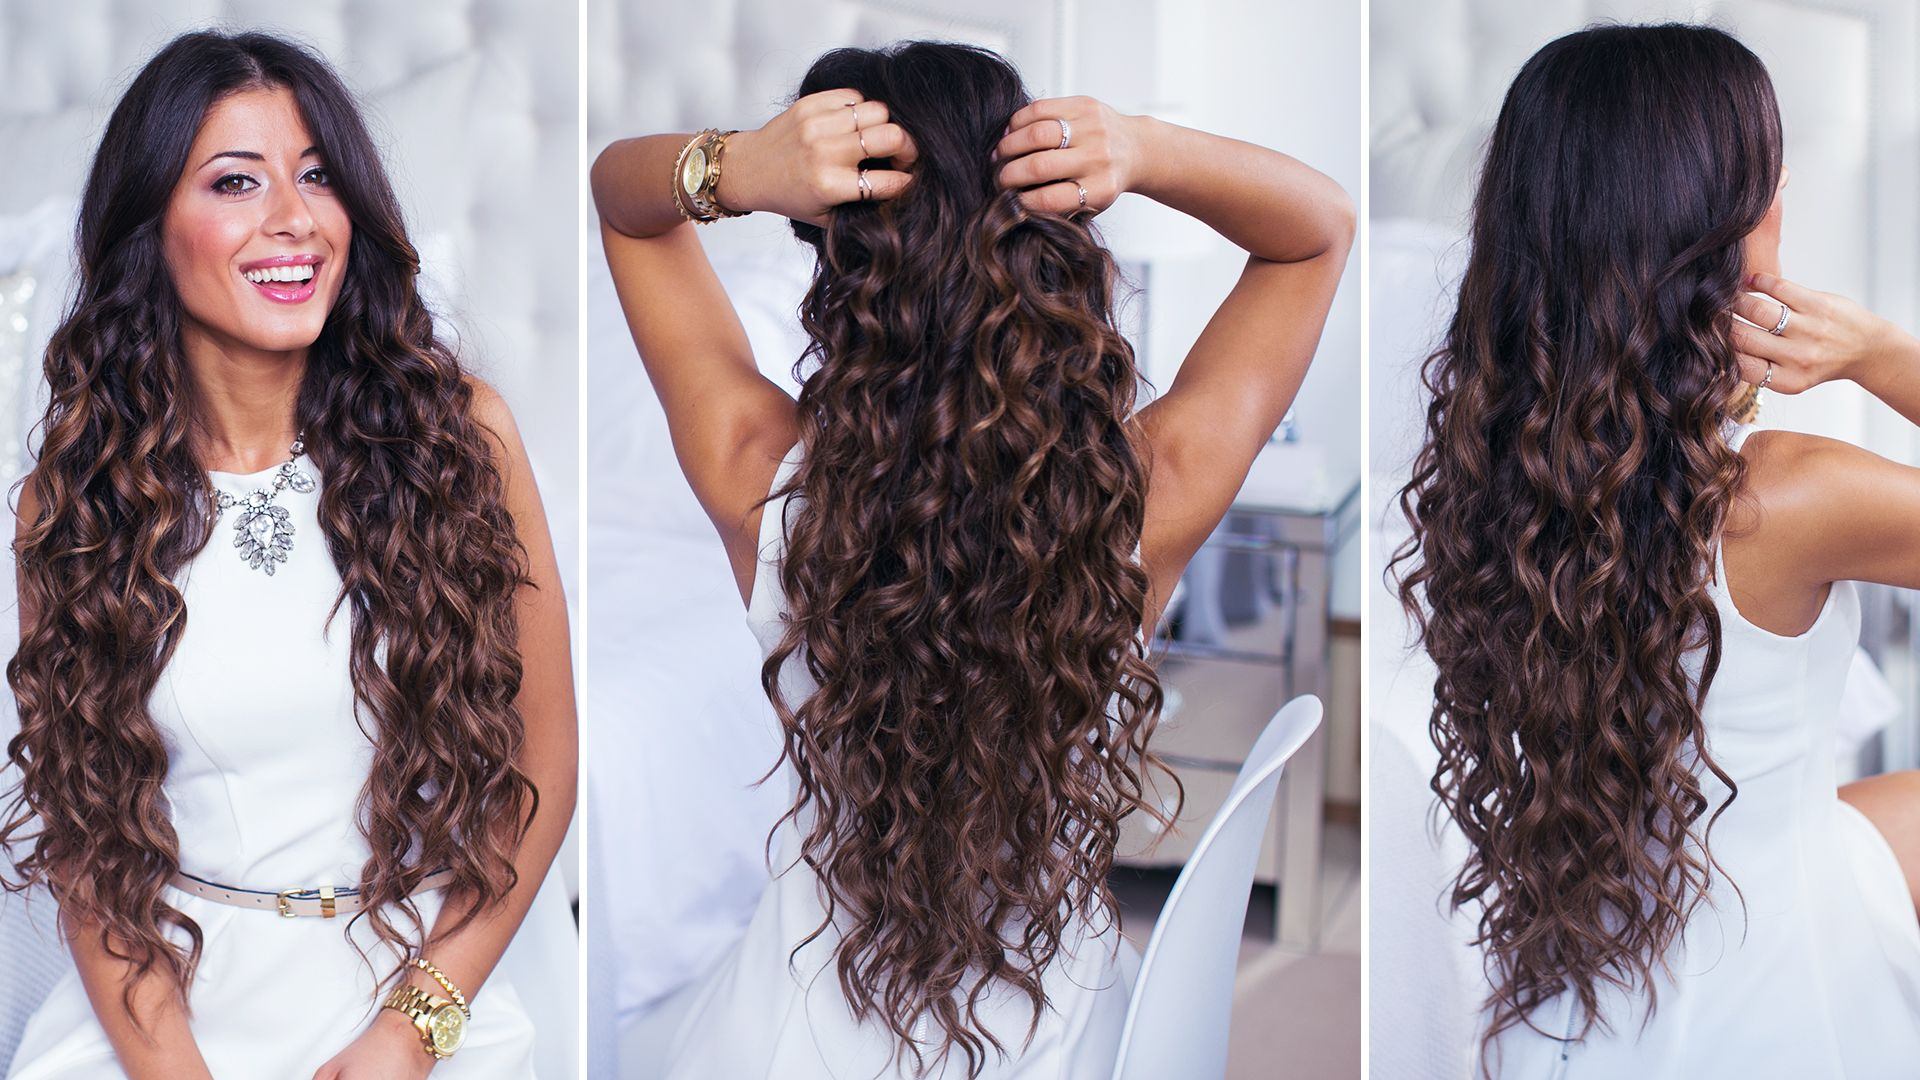 Perfect curls achieved with curling wand on super long Ombre